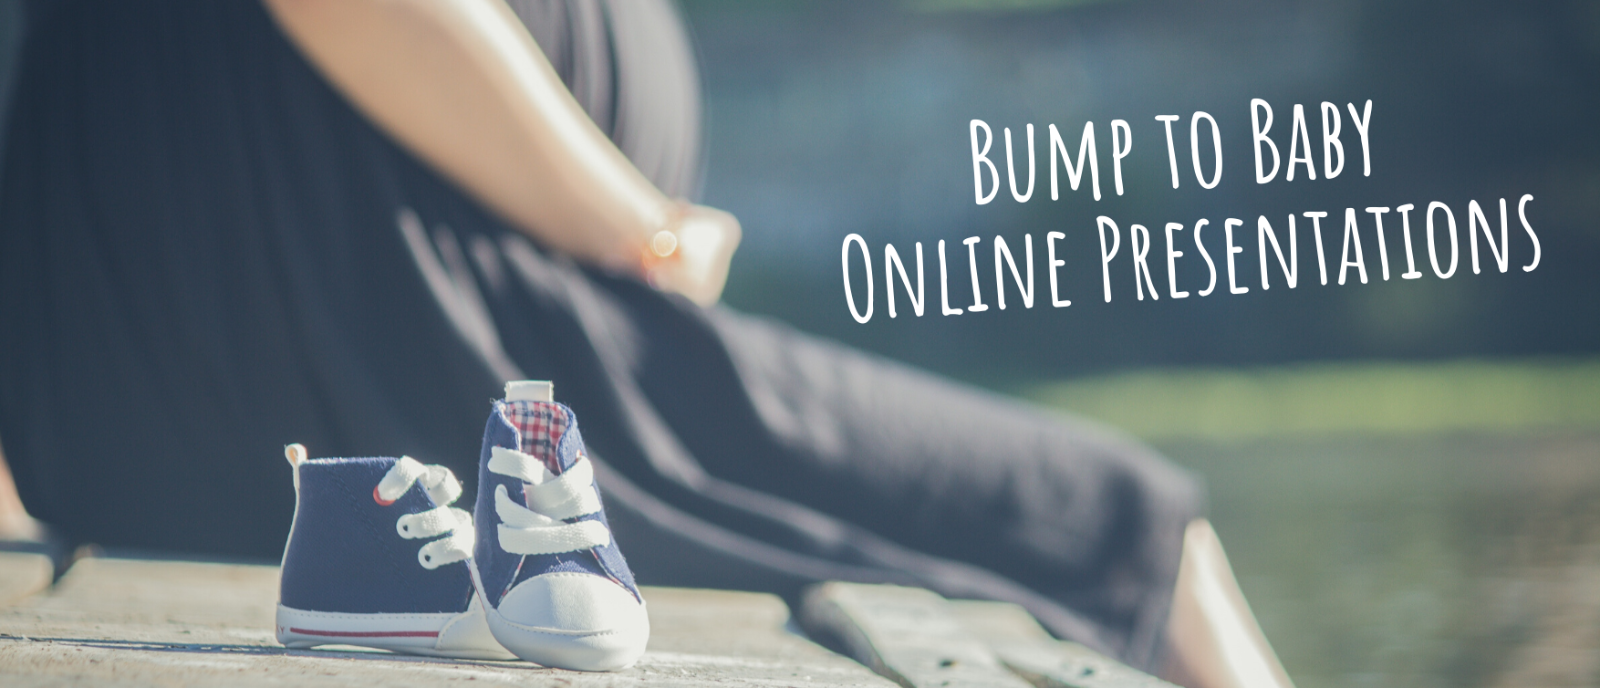 Click here for the online bump to baby presentations